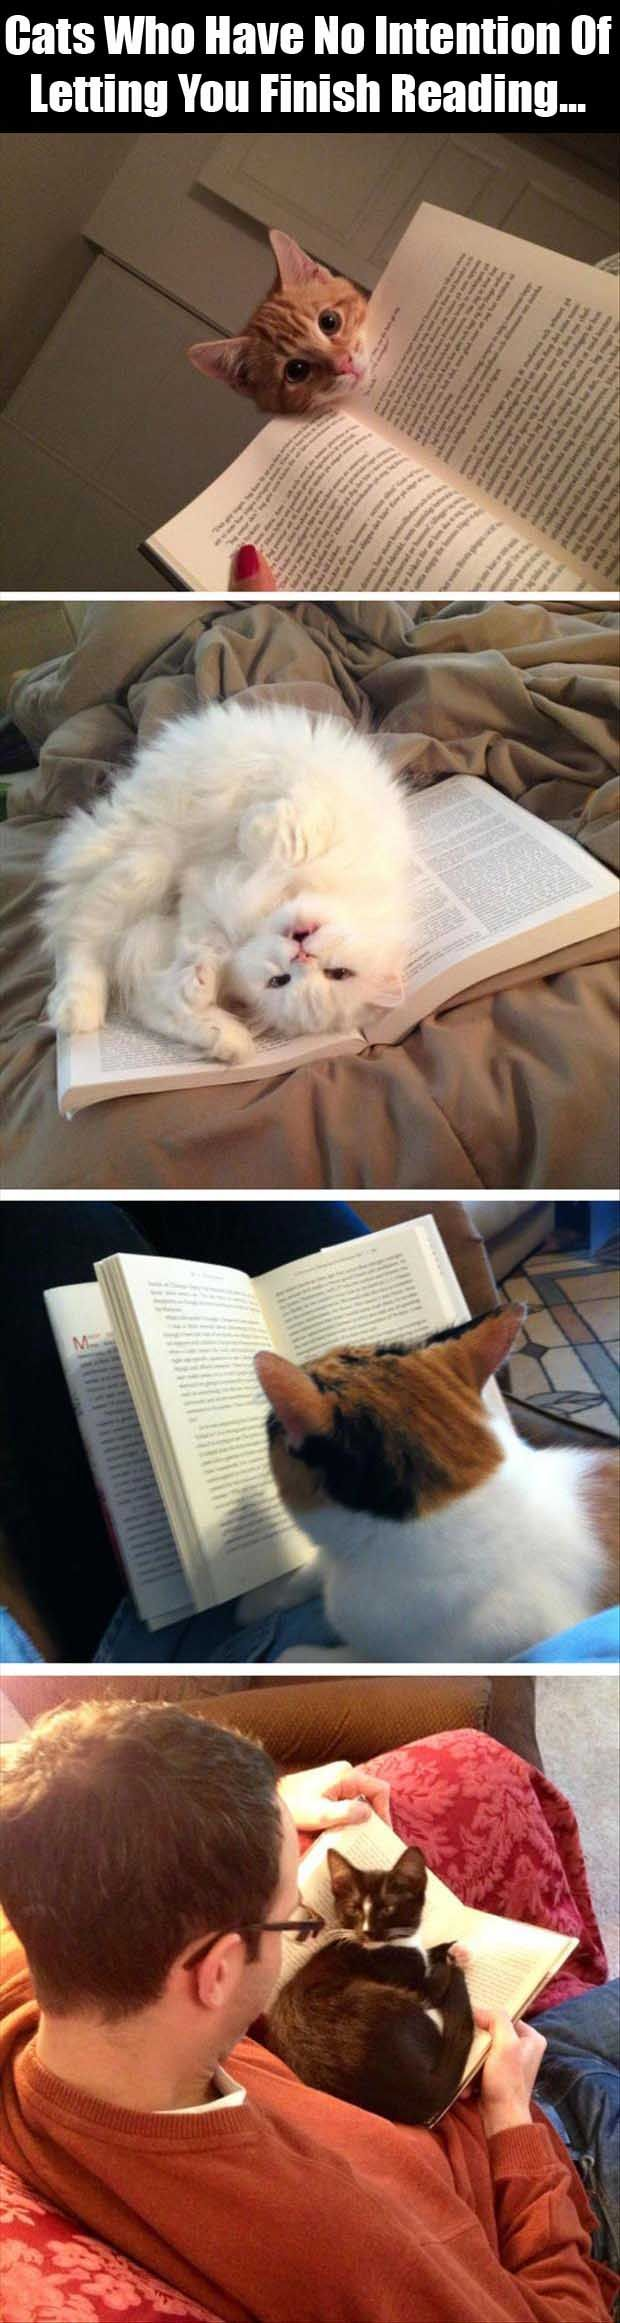 Dump A Day Cats Have No Intention Of Letting You Finish Reading - 10 Pics